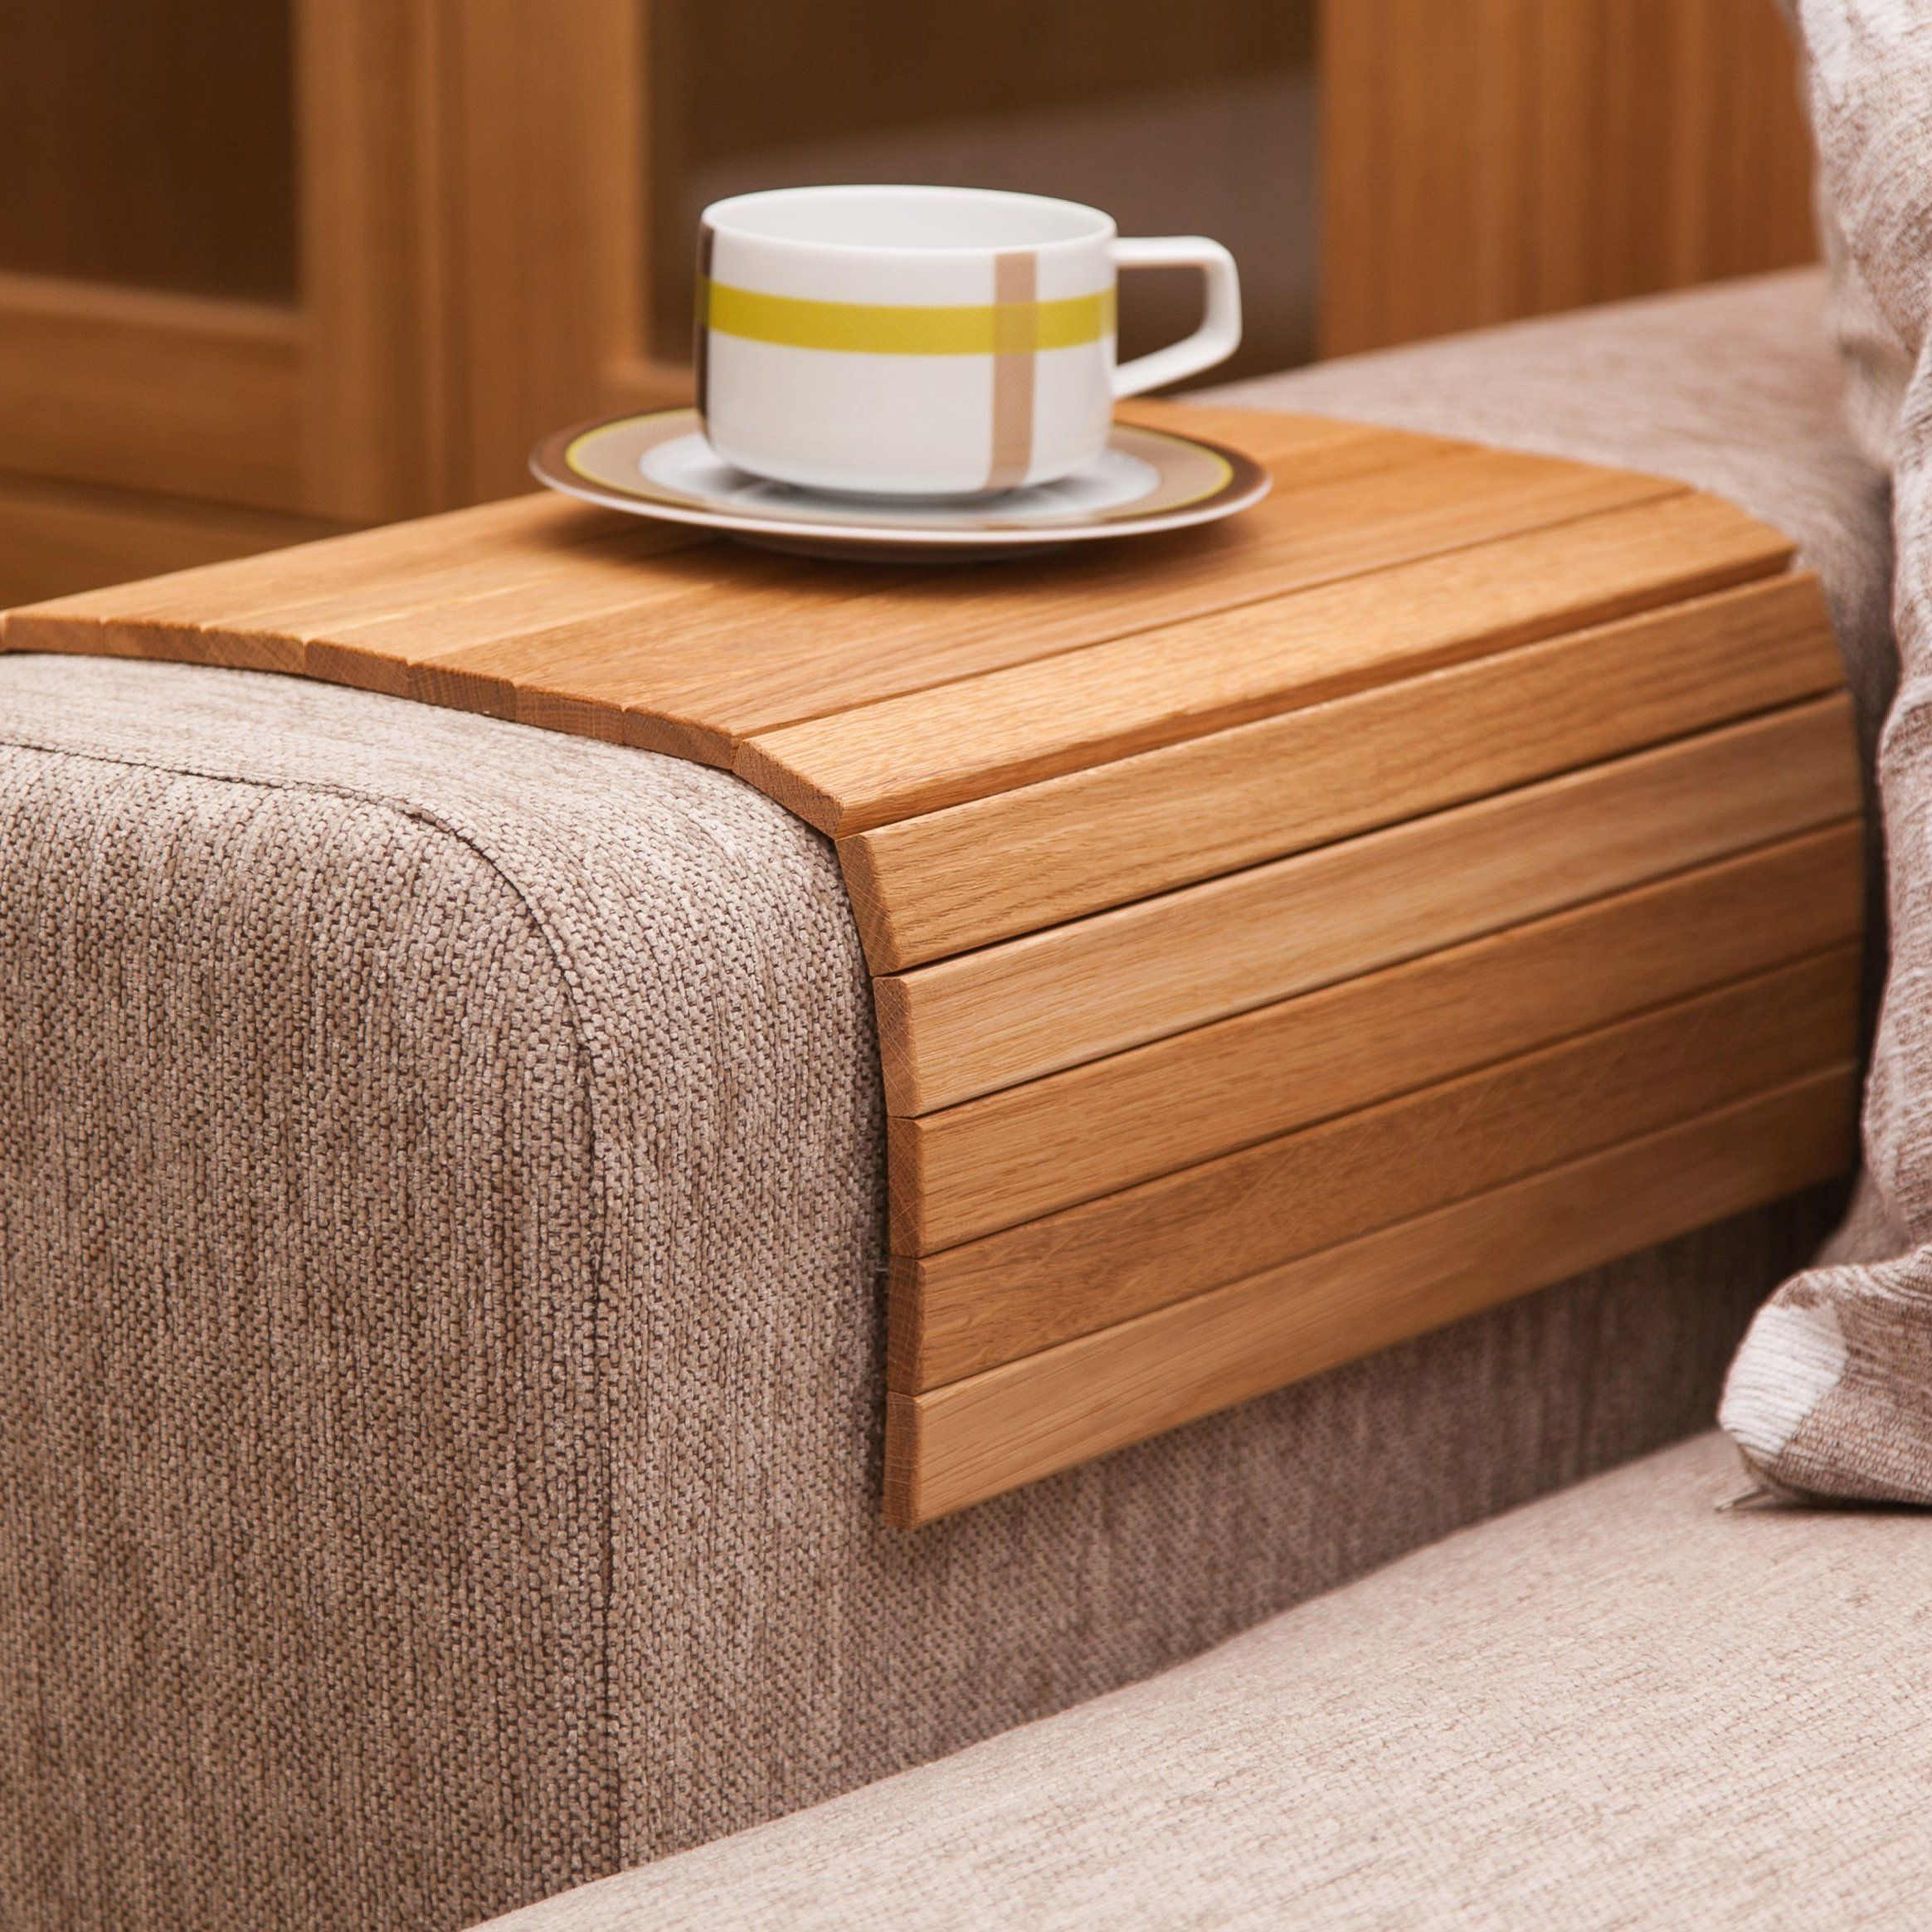 Uncategorized Handmade Wooden Trays handmade wooden oak sofa tray table trays apartments and unique fancy table